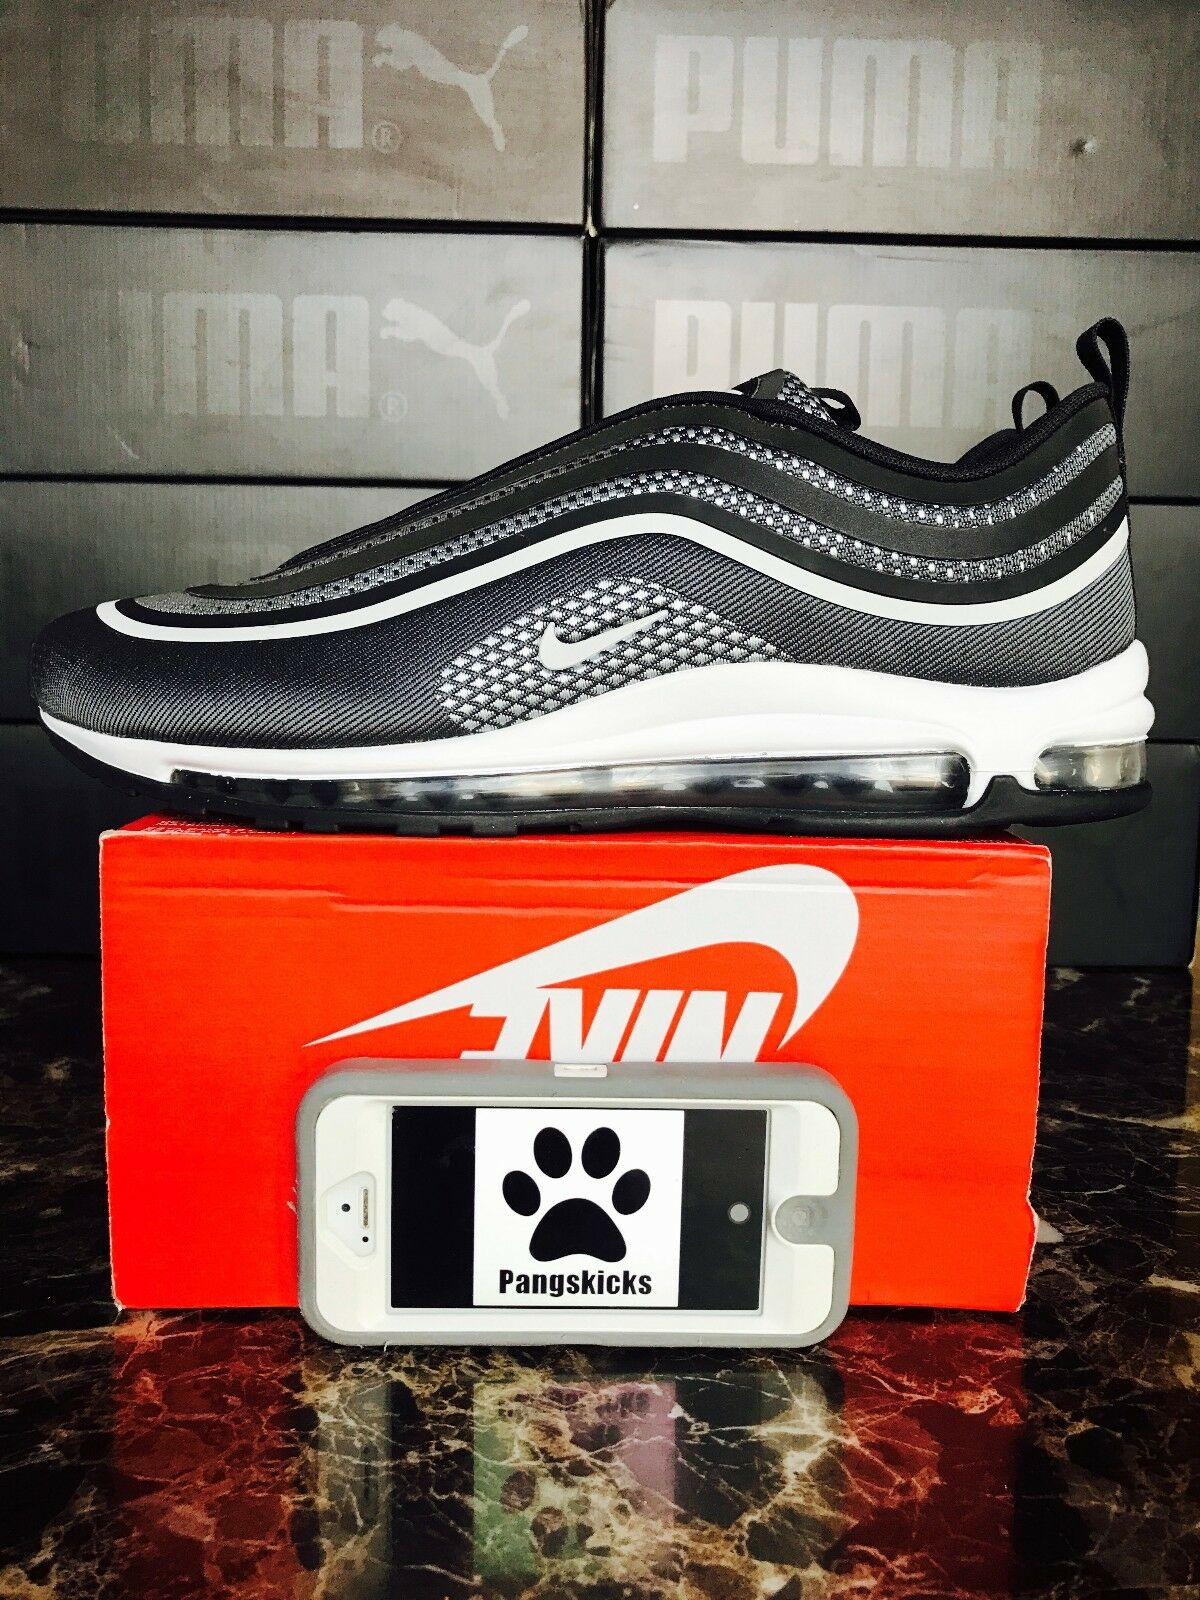 Nike Air Max 97 Ultra '17 Black Anthracite 918356-001 Size 11.5